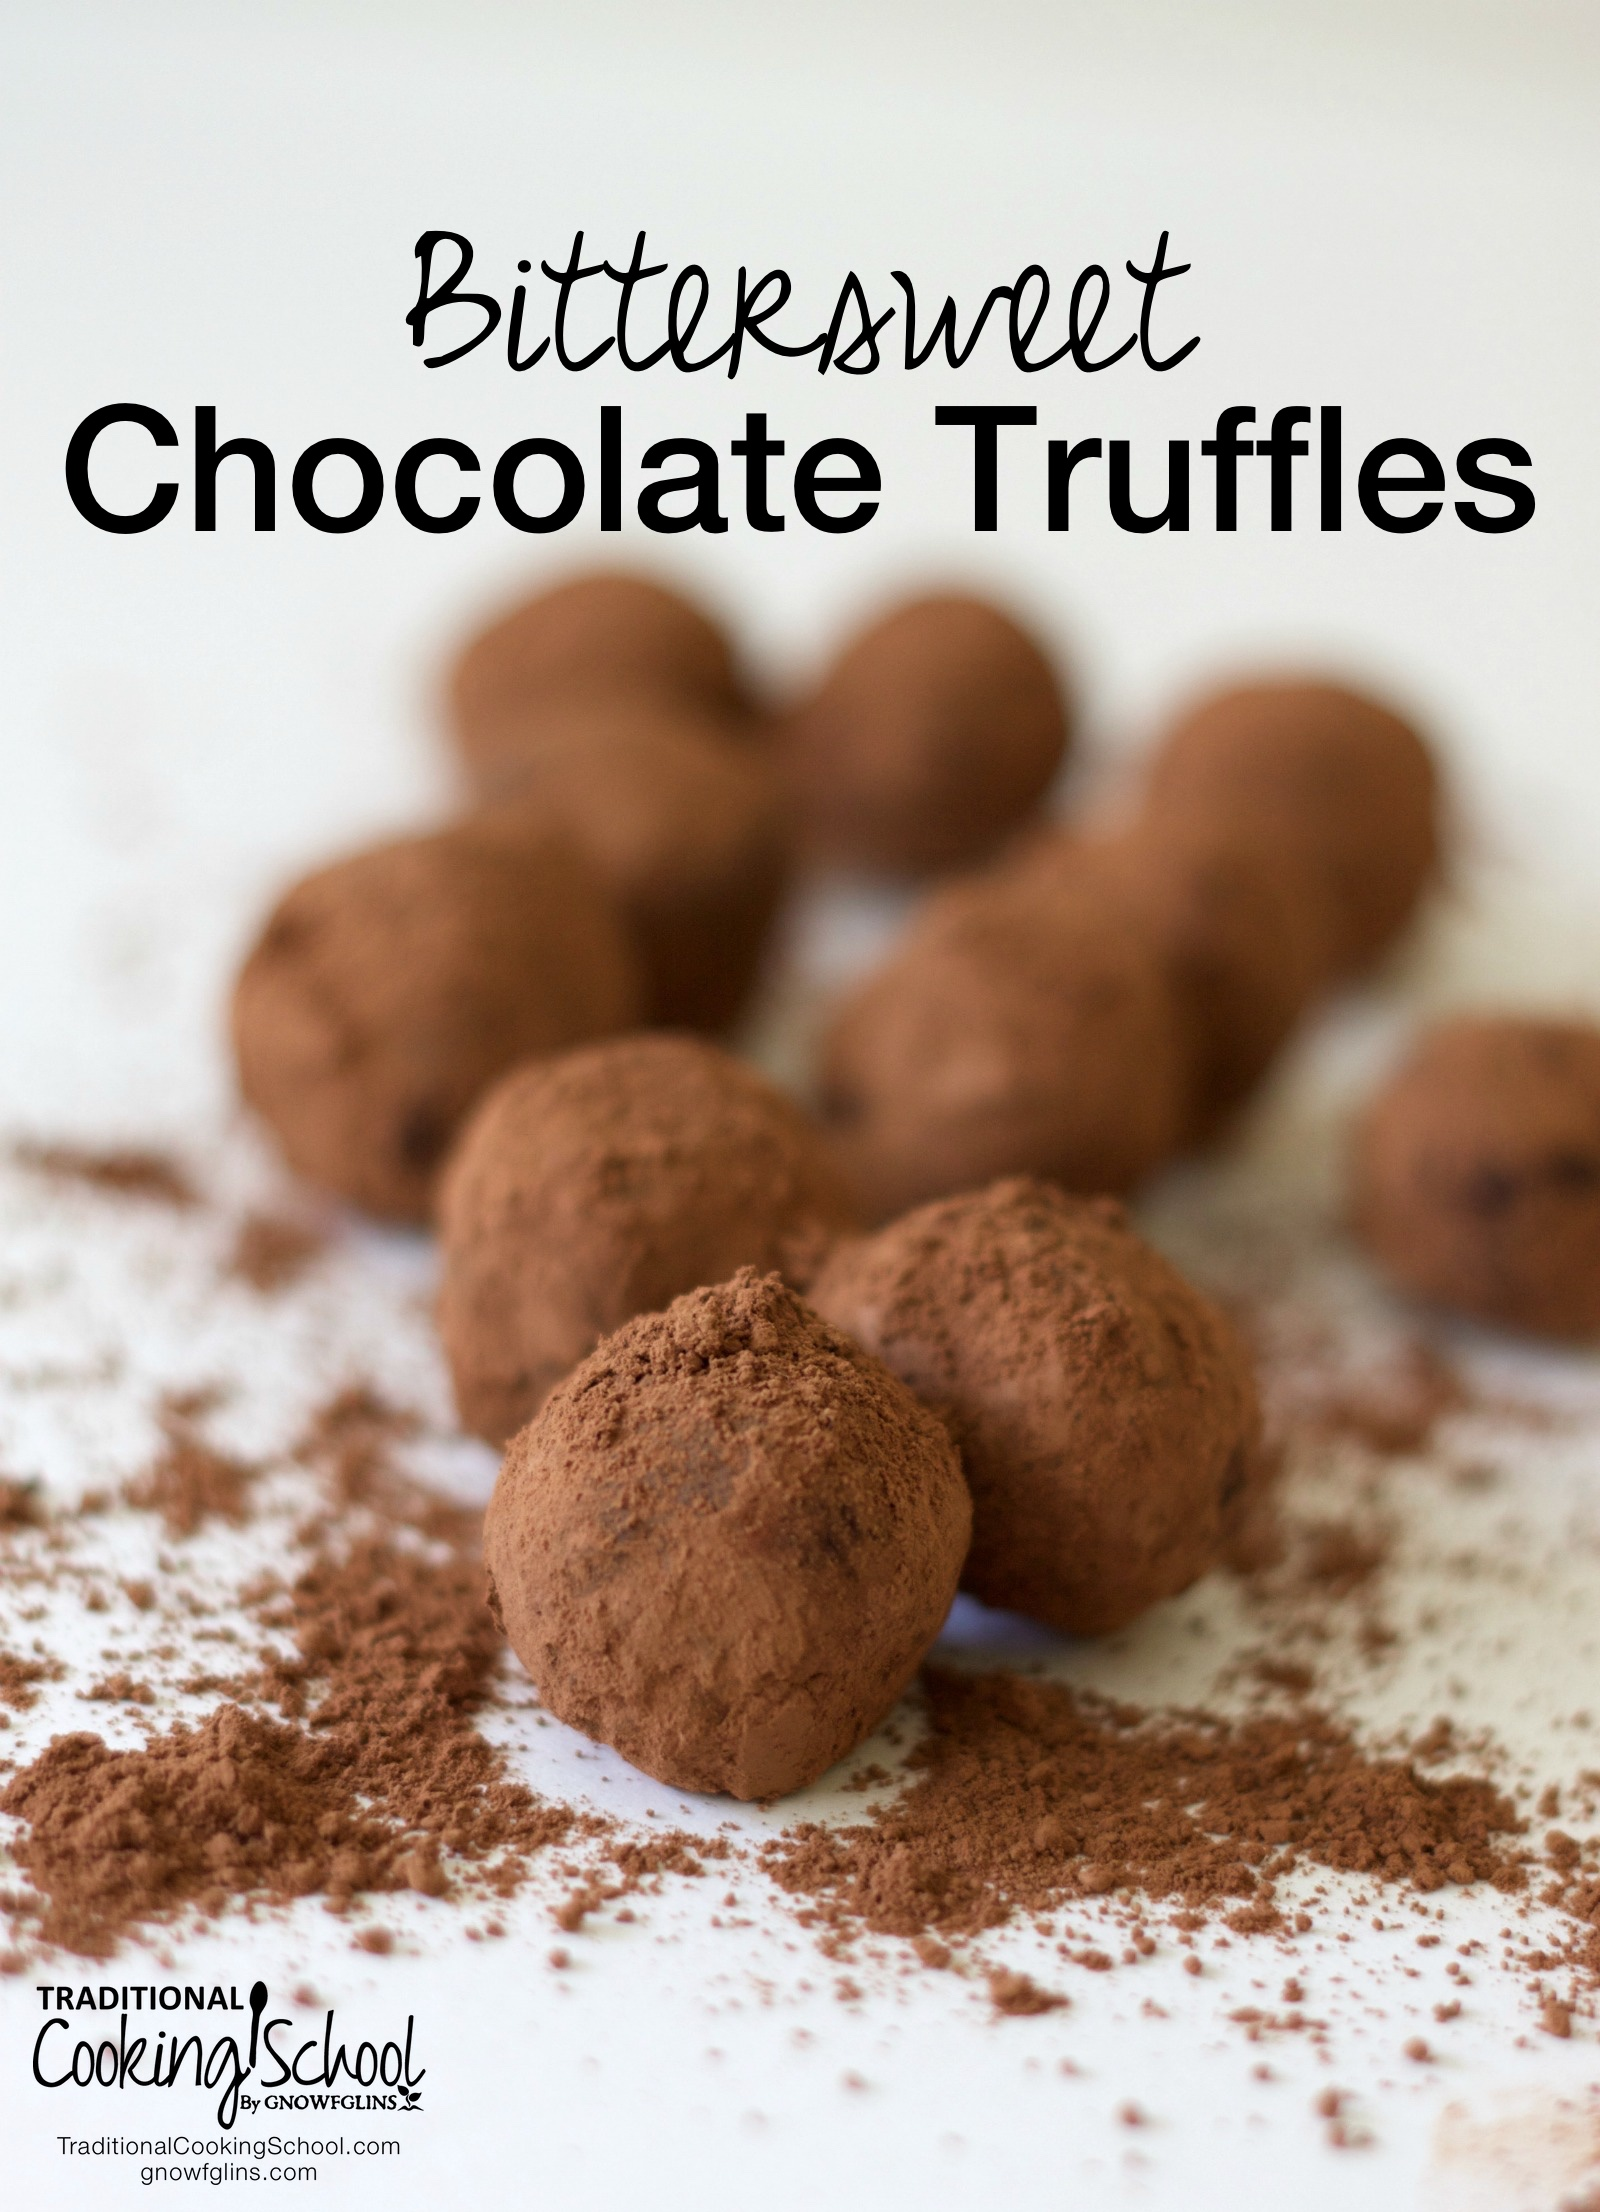 Bittersweet Chocolate Truffles | Chocolate is God's gift to women. Am I right? When my friends introduced me to scrumptious, bittersweet chocolate truffles coated in cocoa powder that melt in your mouth, it was only a matter of time before I created my own version of bittersweet chocolate truffles! | TraditionalCookingSchool.com